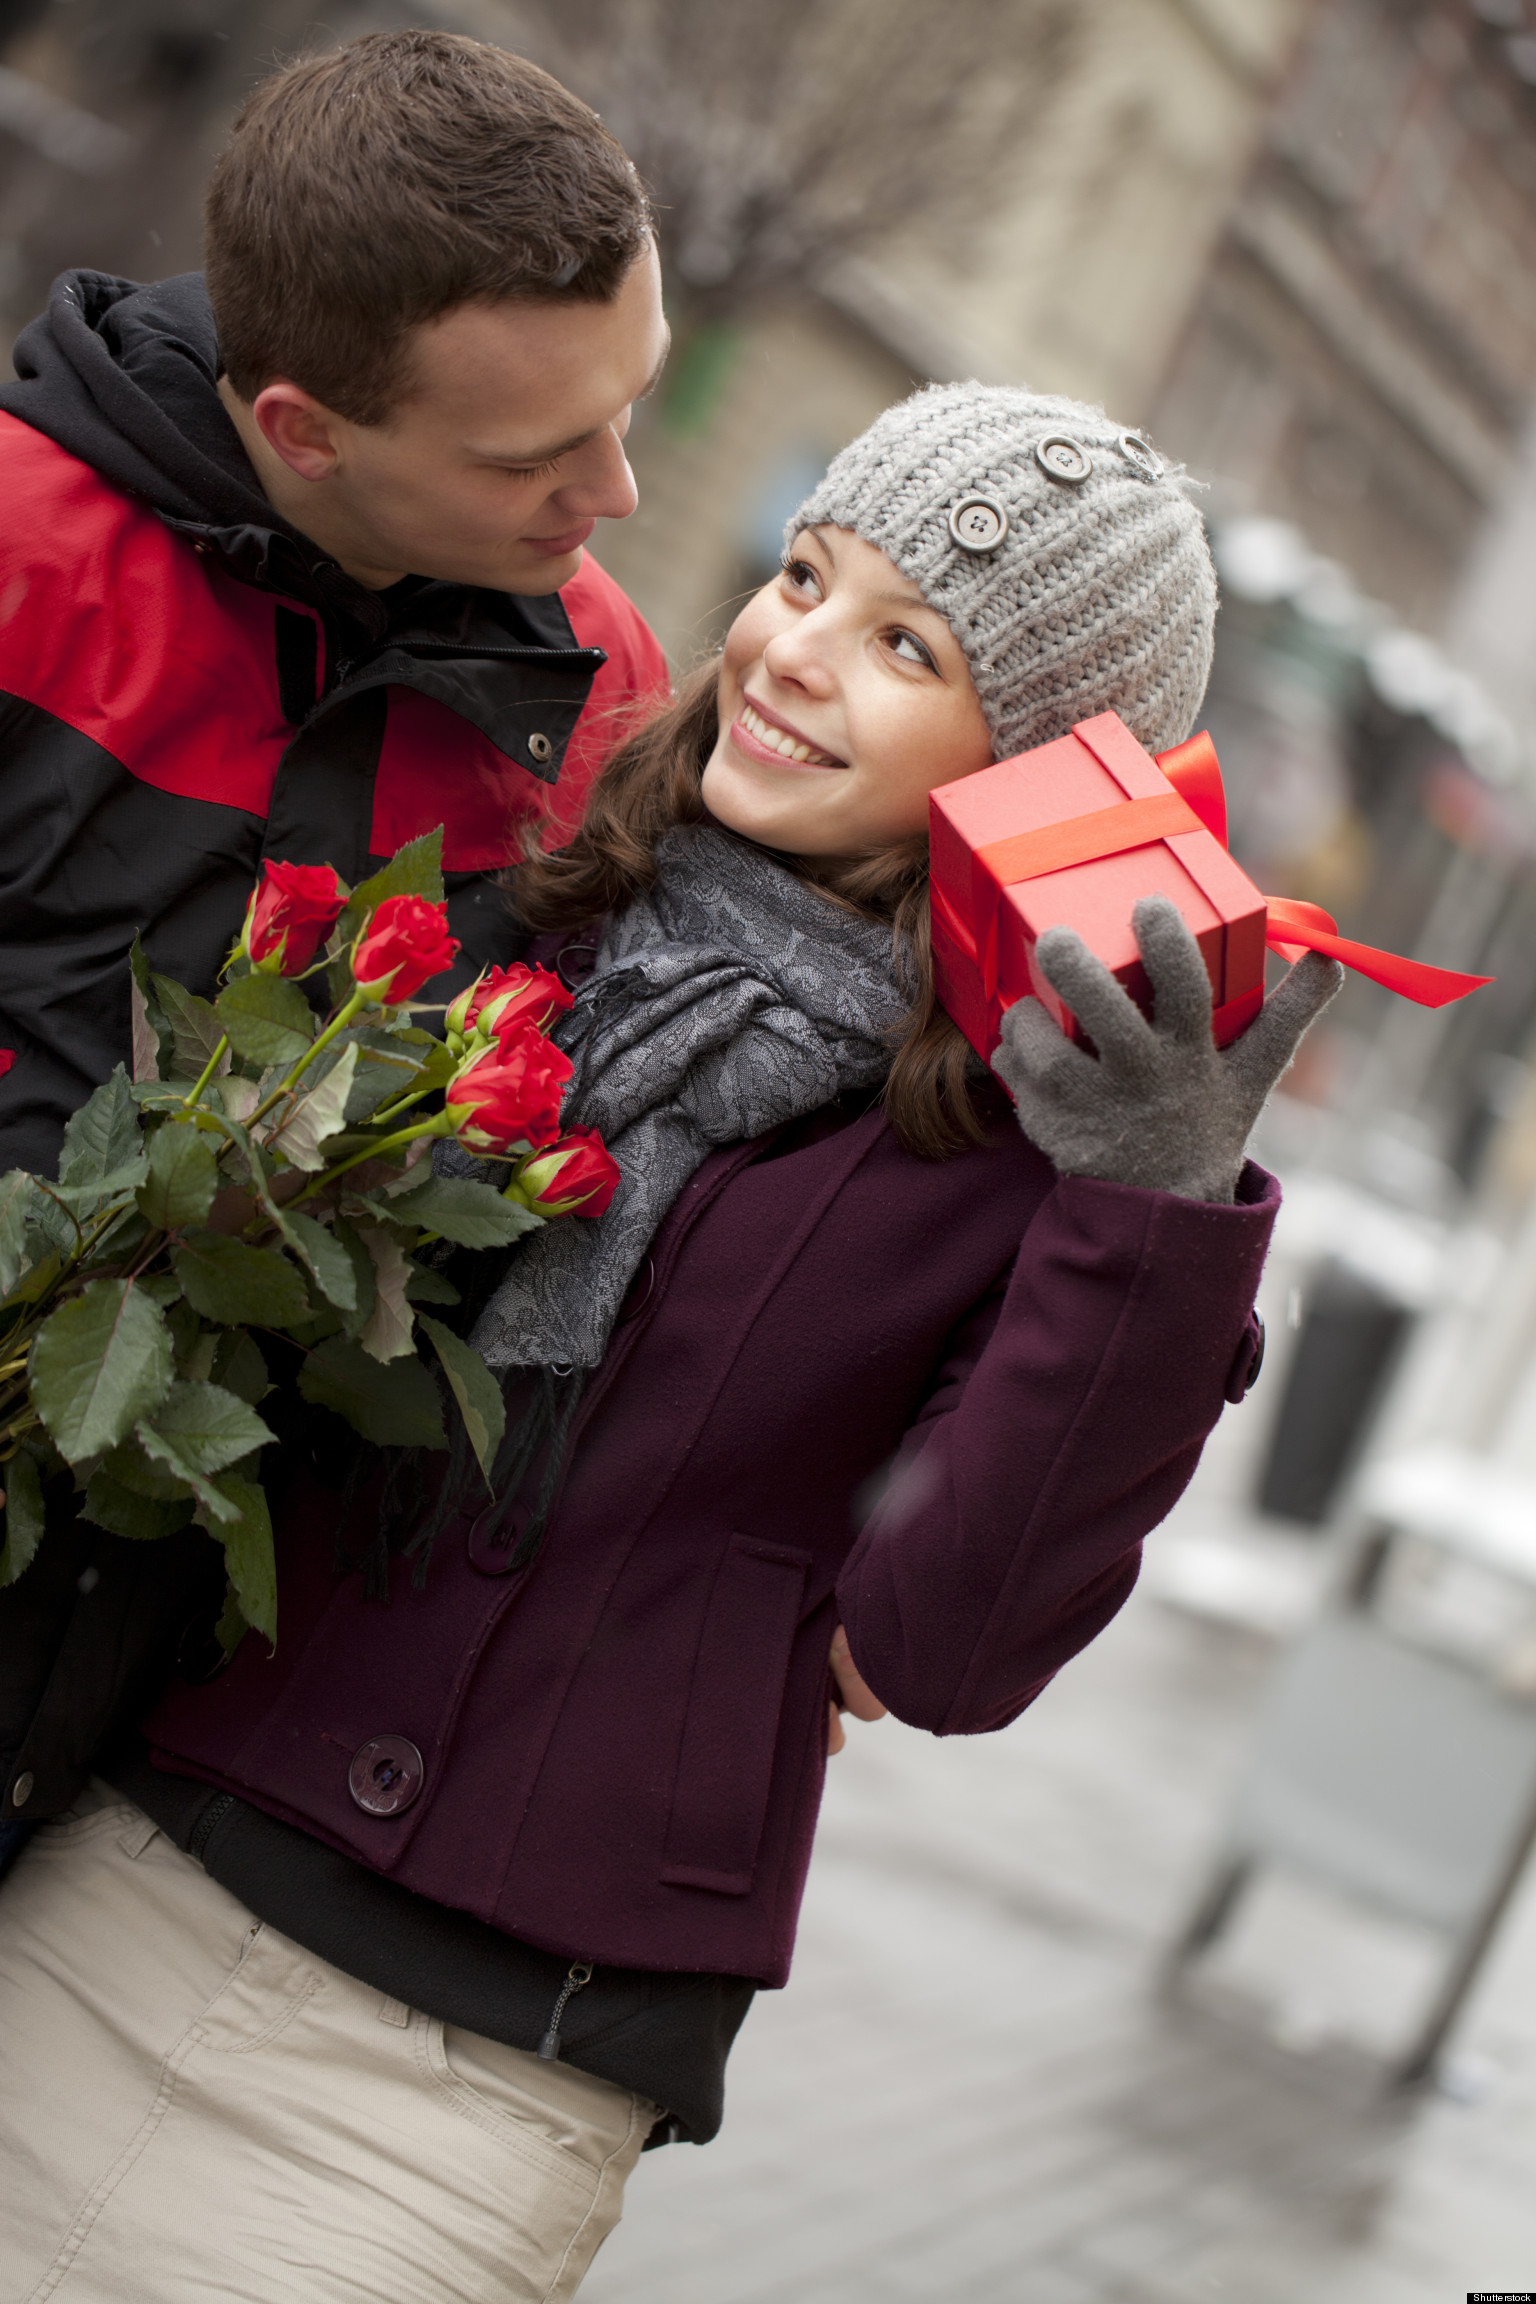 valentine's day proposals: survey reveals how many couples will, Ideas